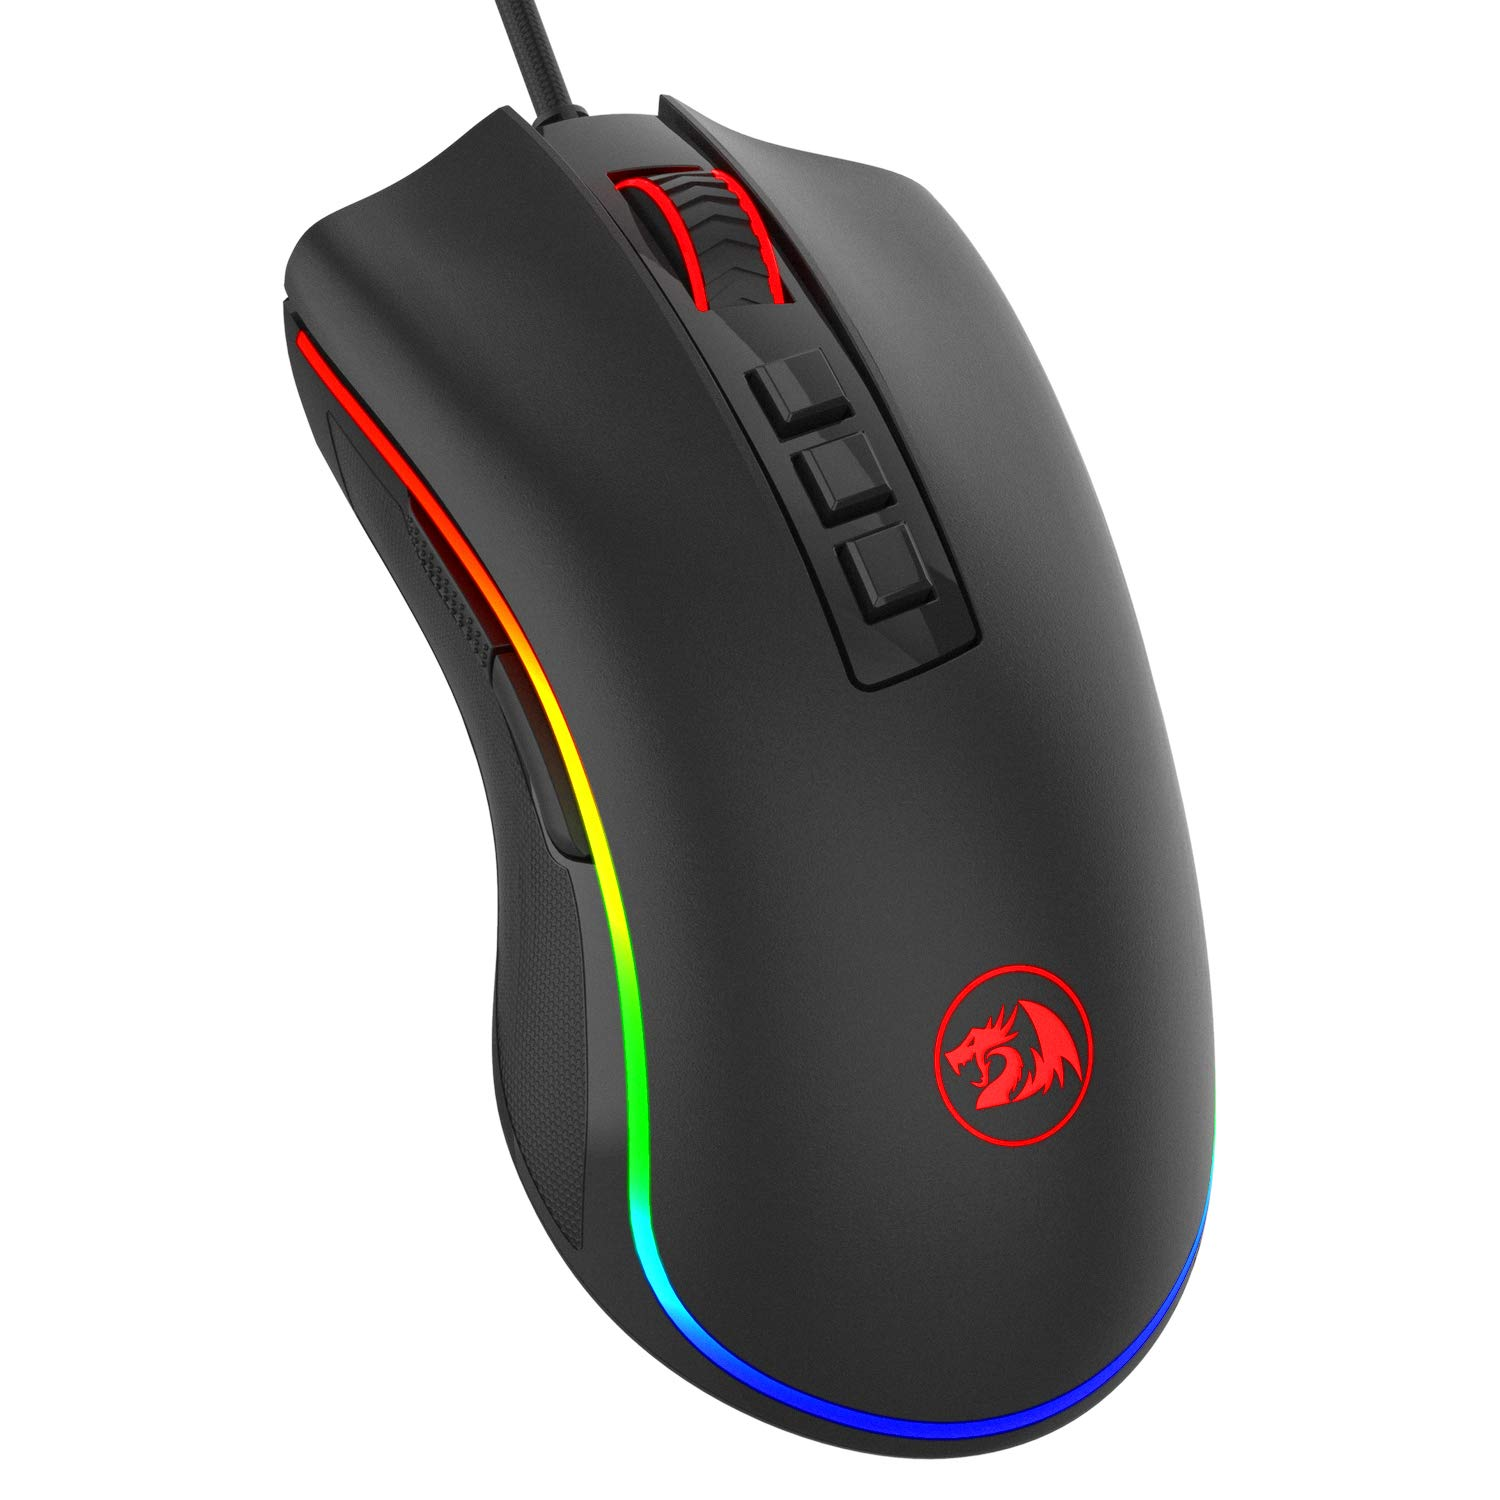 Redragon M711 Cobra Gaming Mouse with 16.8 Million RGB Color Backlit, 10,000 DPI Adjustable, Comfortable Grip, 7 Programmable Buttons by Redragon